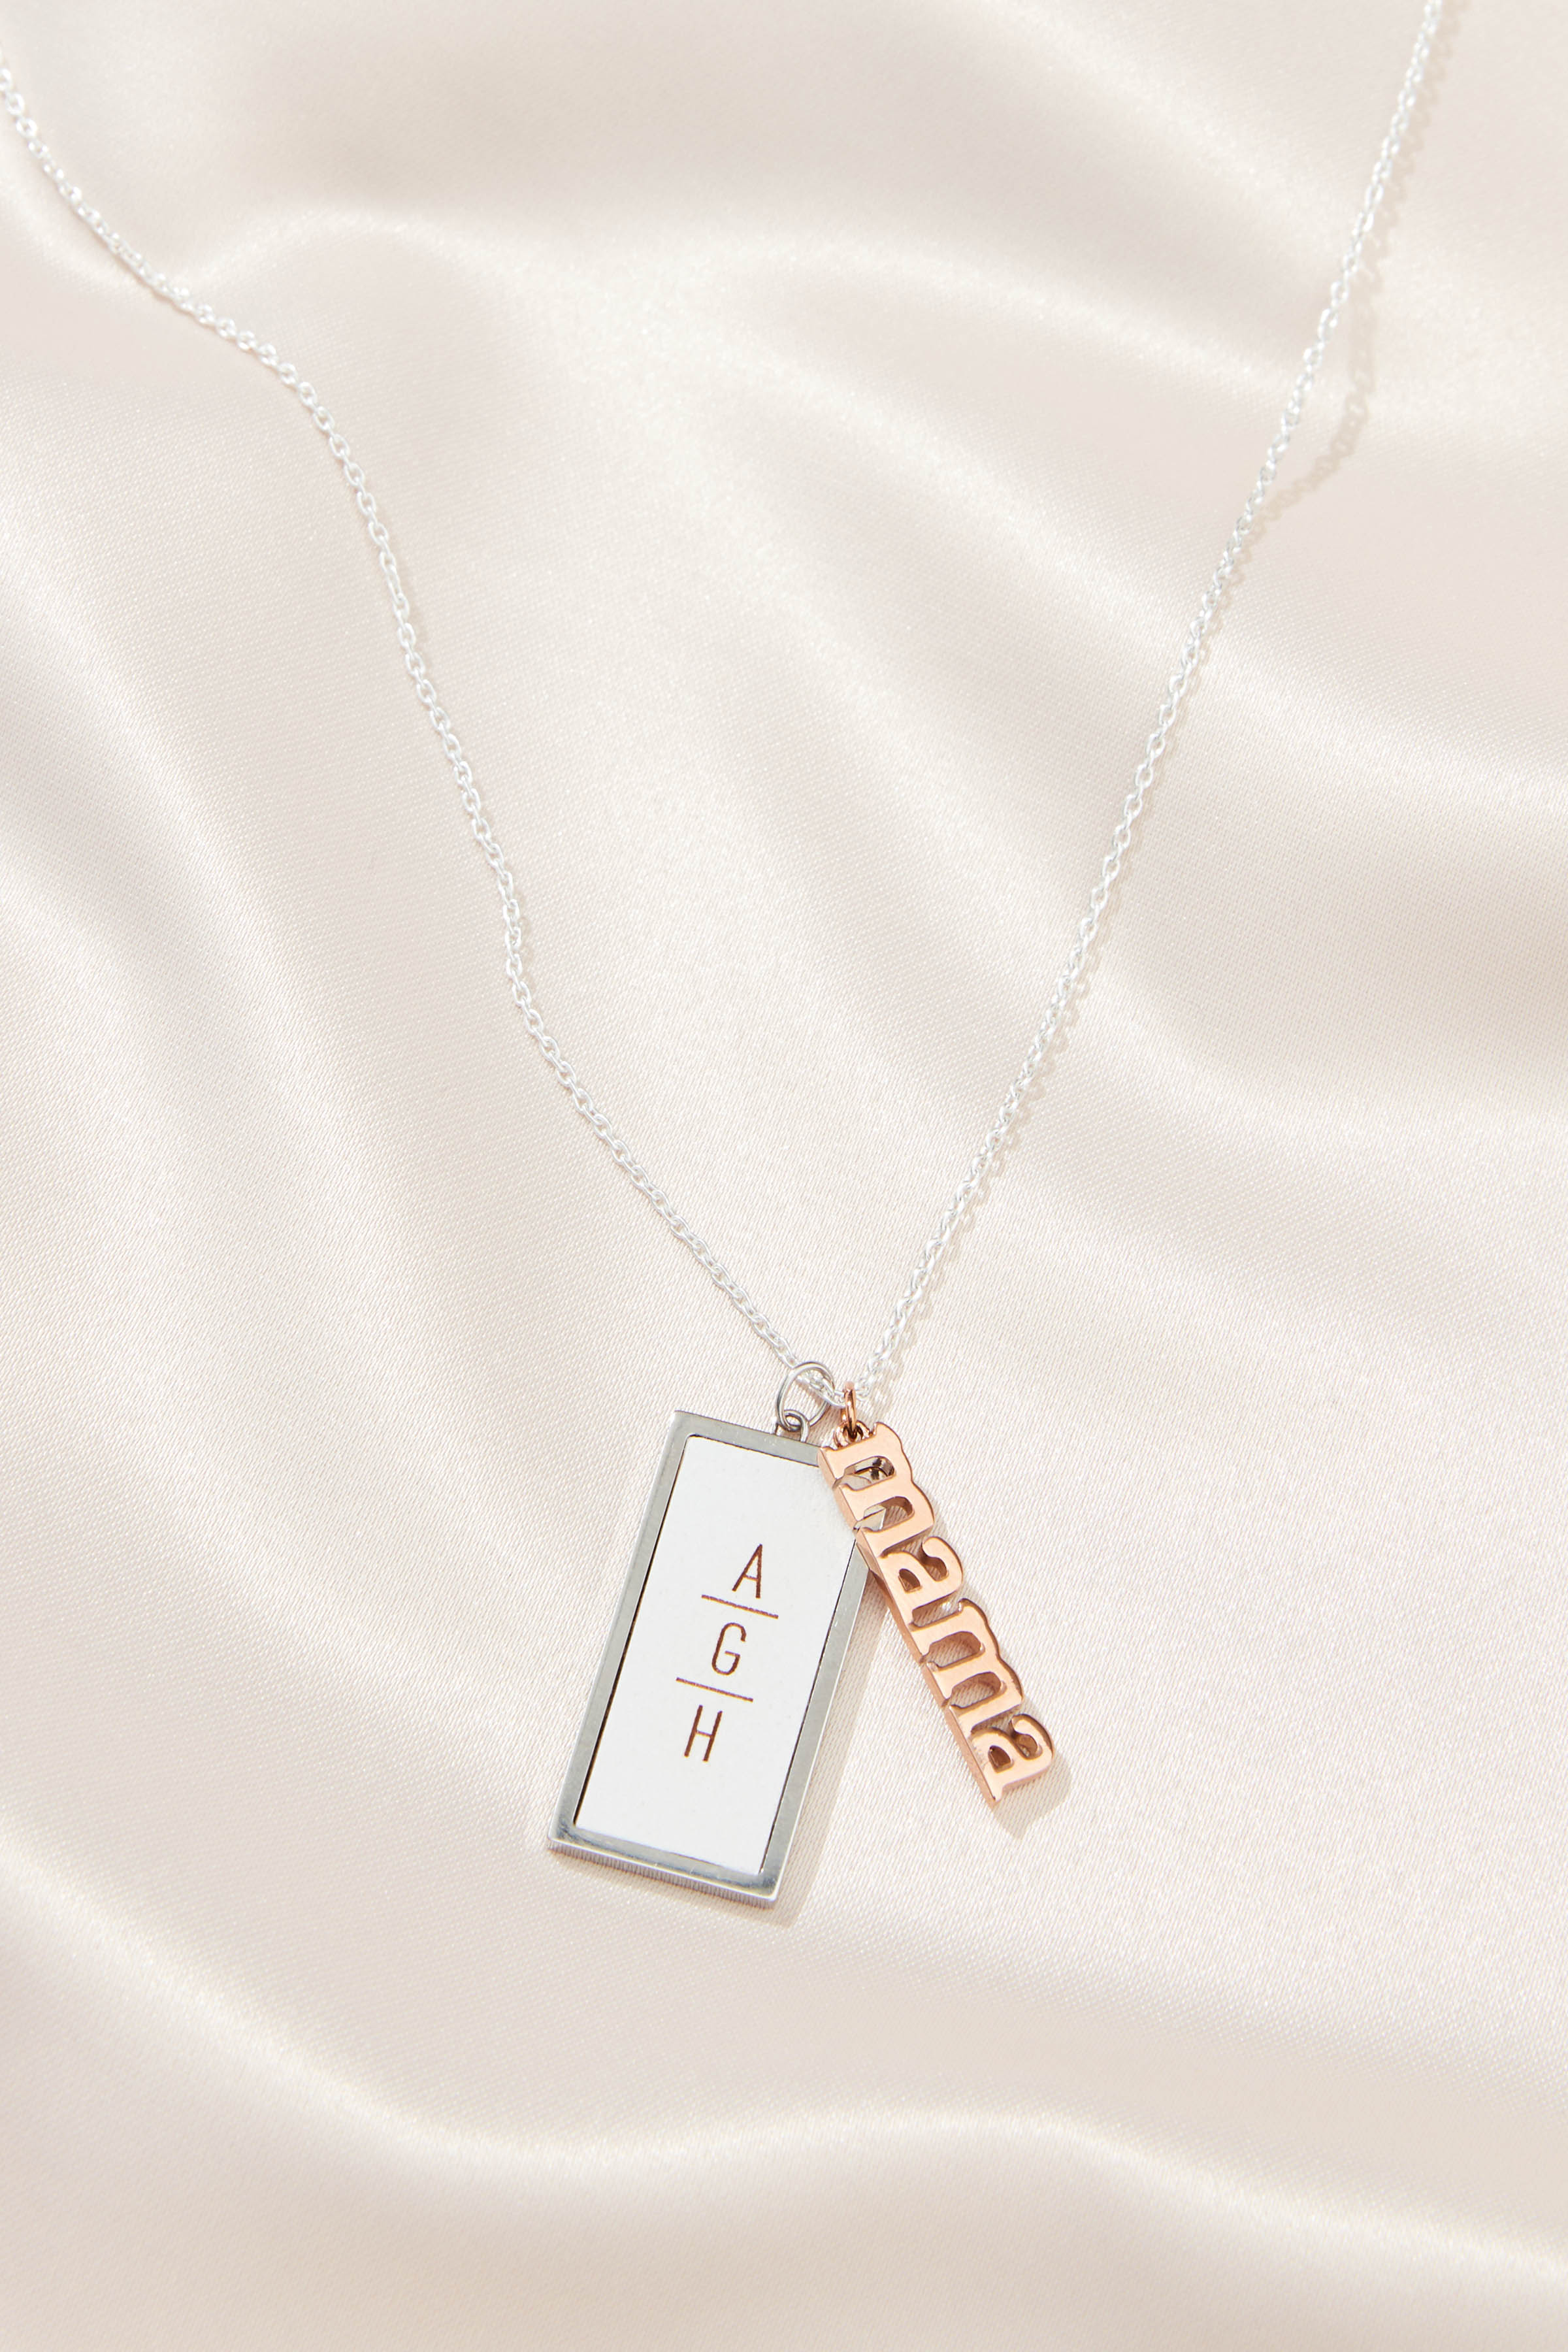 Mother's Day gift ideas: charm necklace